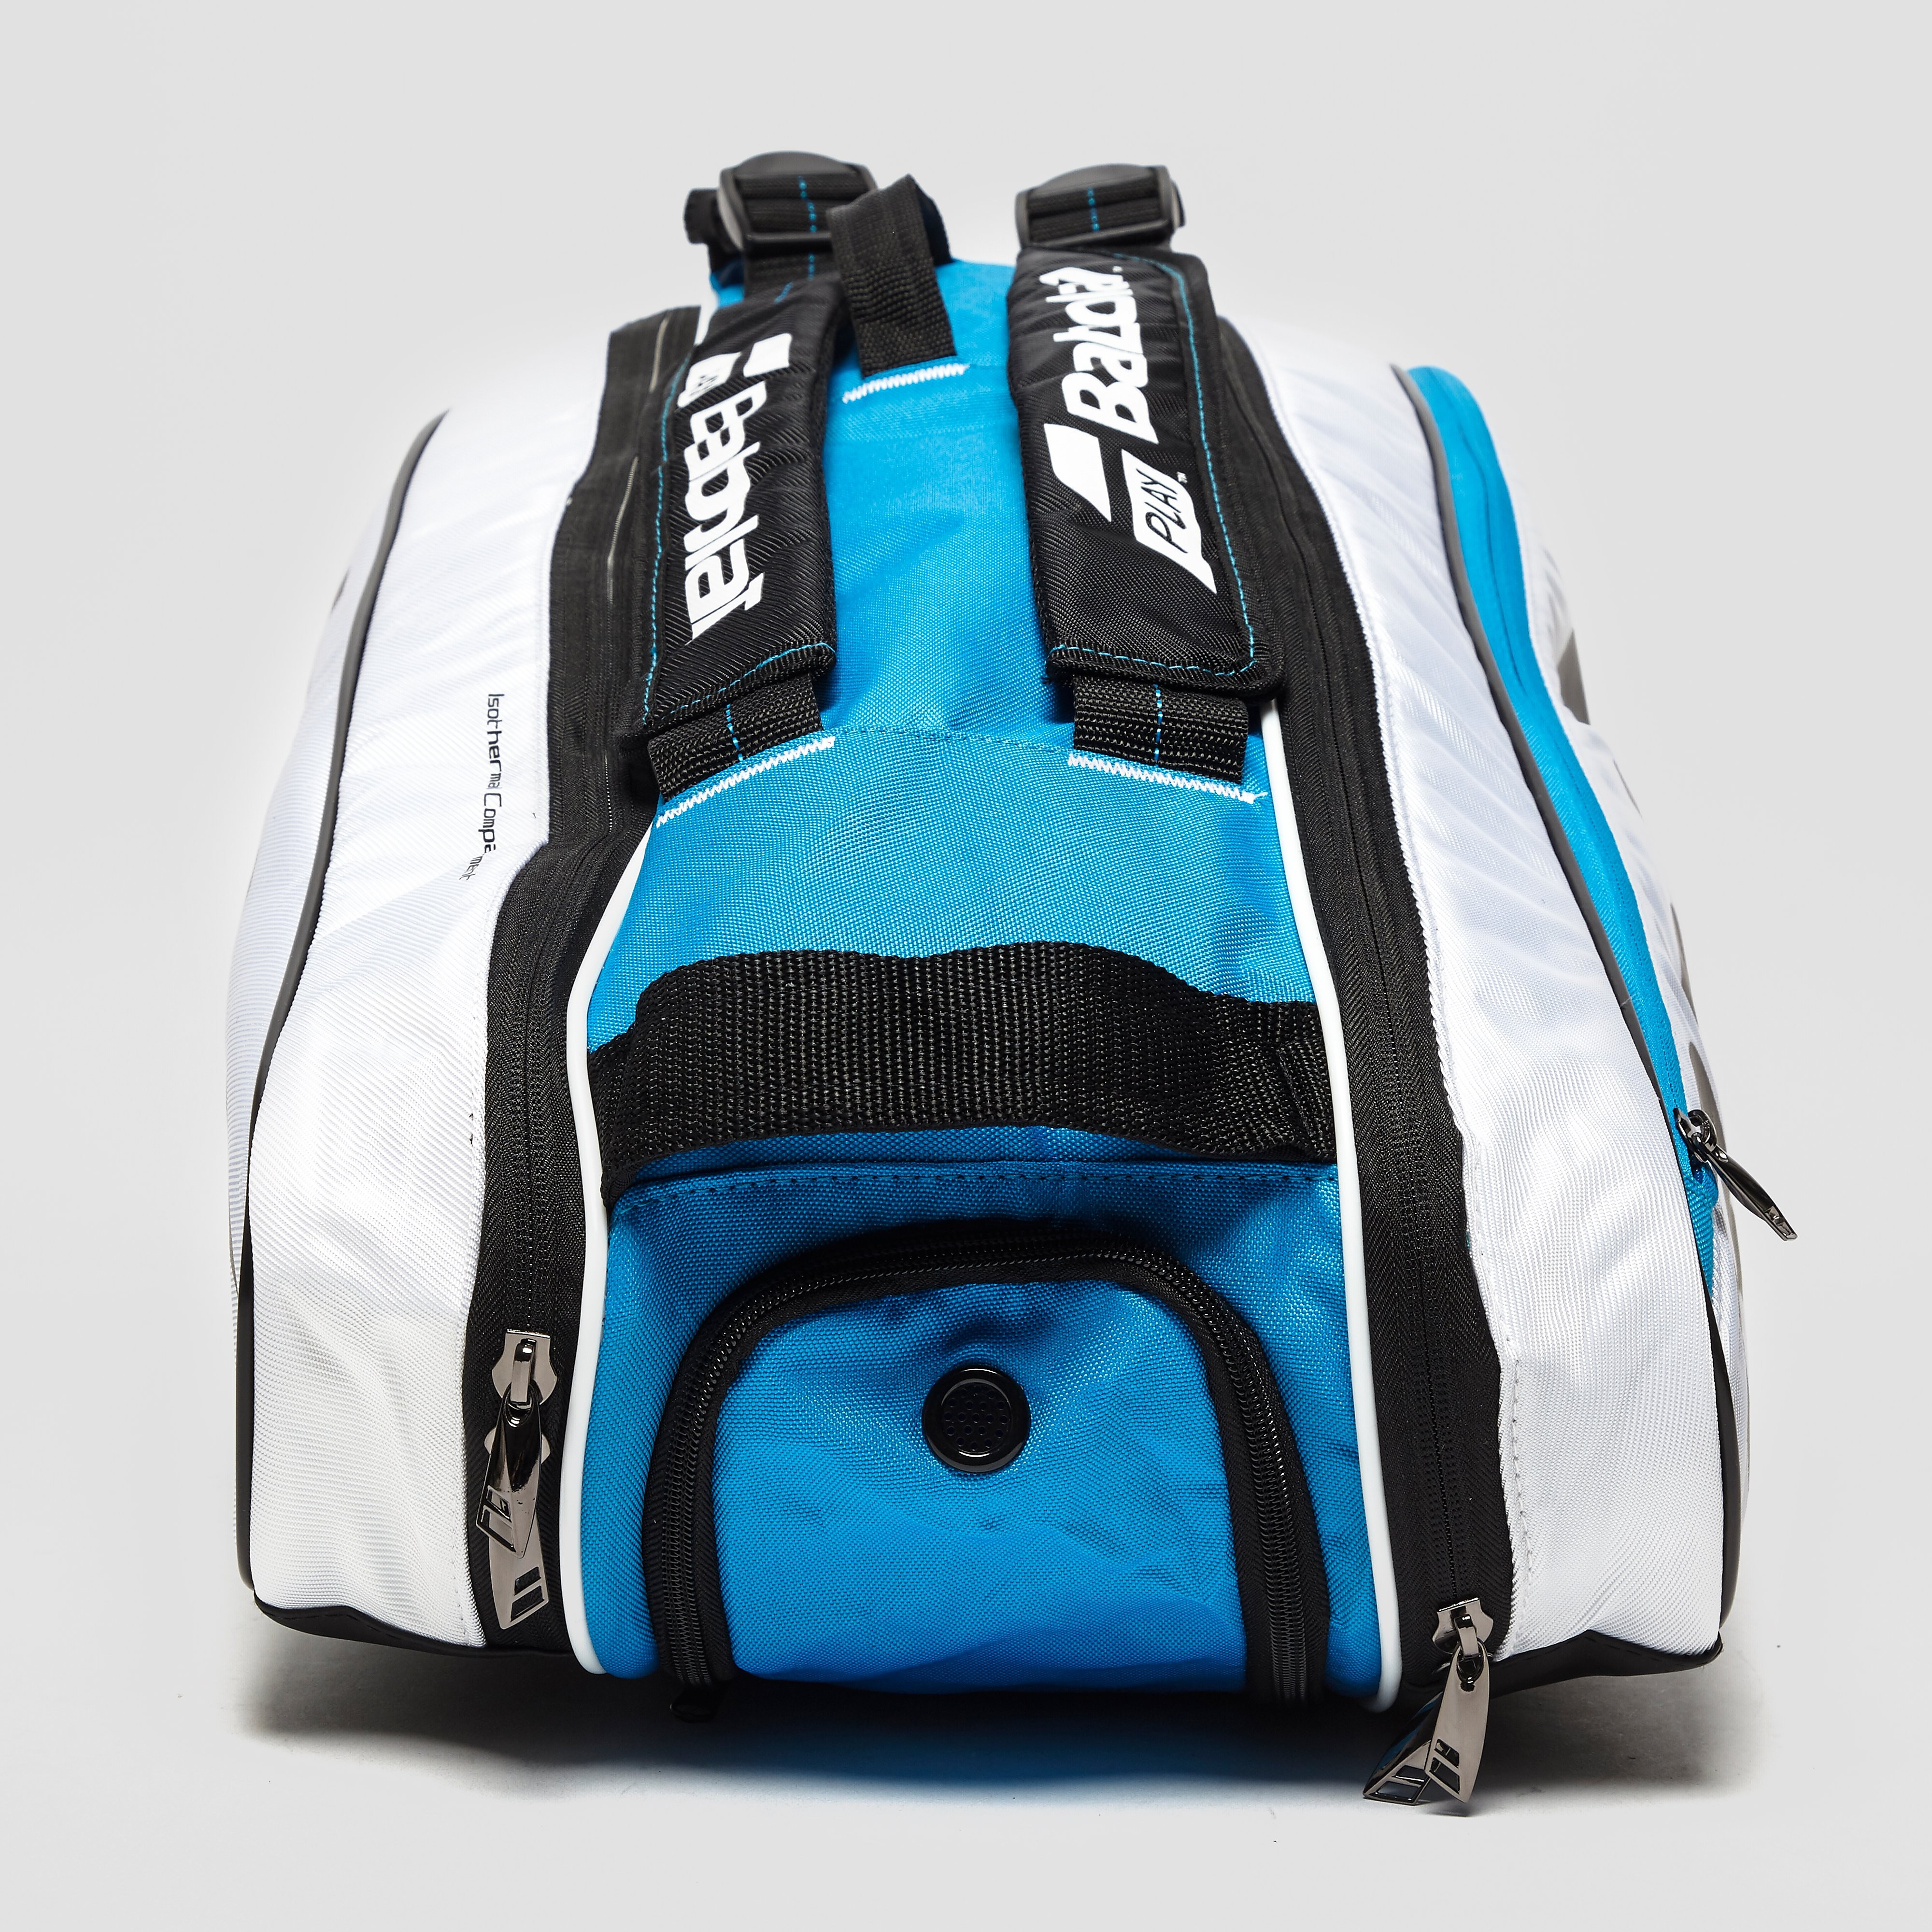 Babolat RH6 Pure Racket Bag